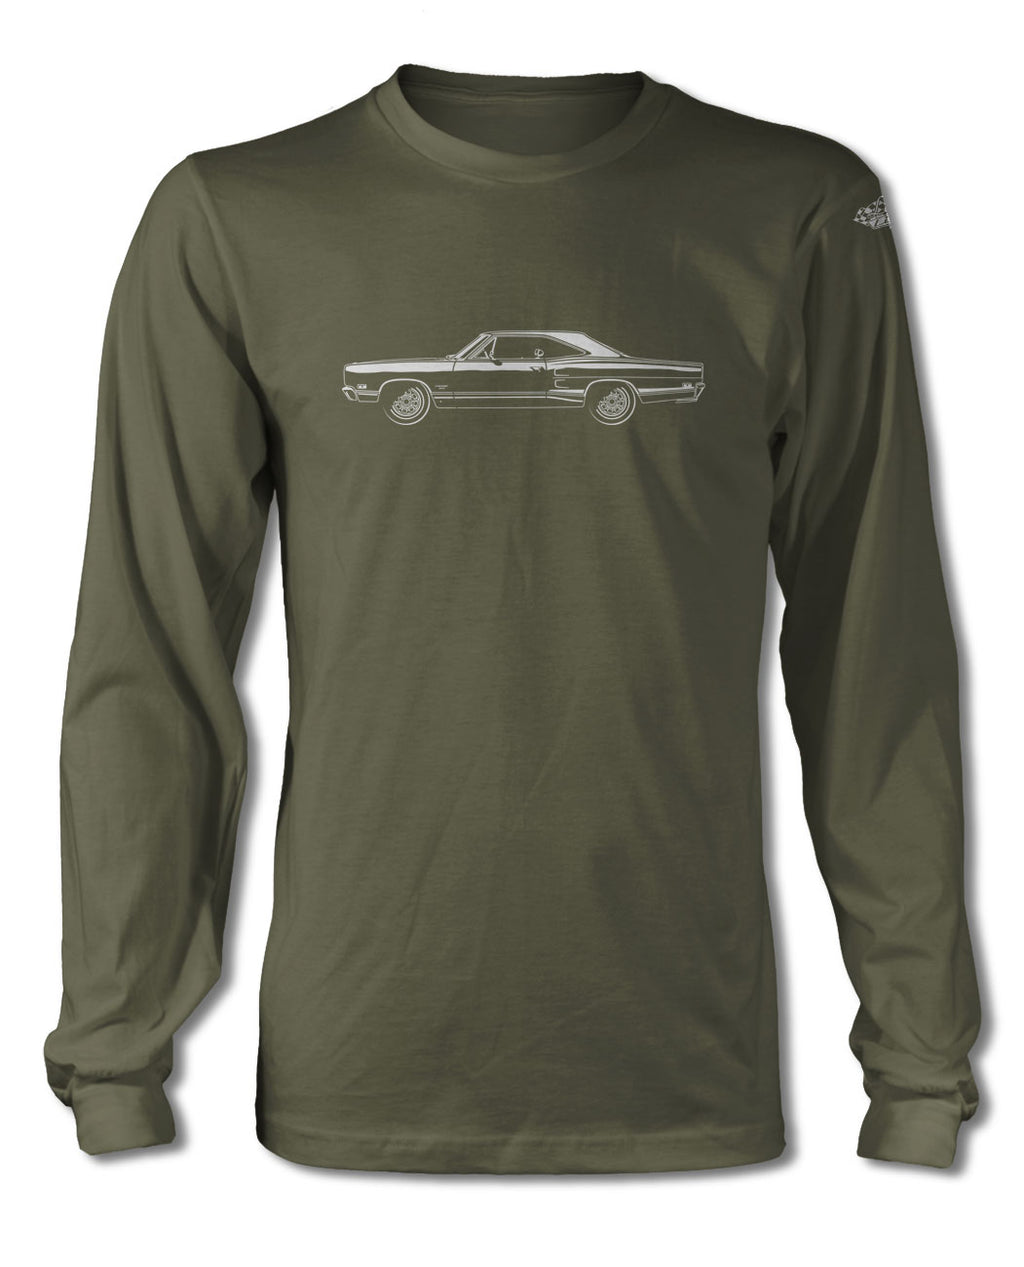 1969 Dodge Coronet 500 Coupe T-Shirt - Long Sleeves - Side View